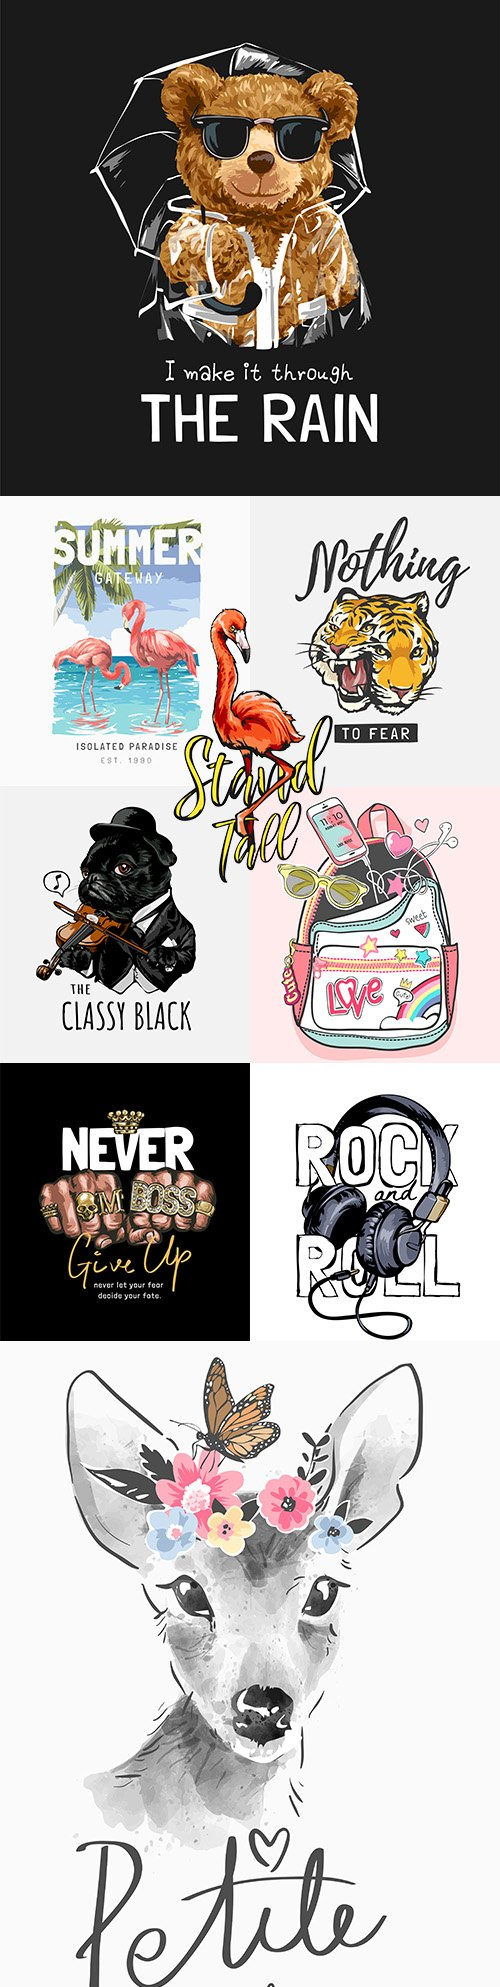 Stand slogan with cartoon vintage graphic illustration